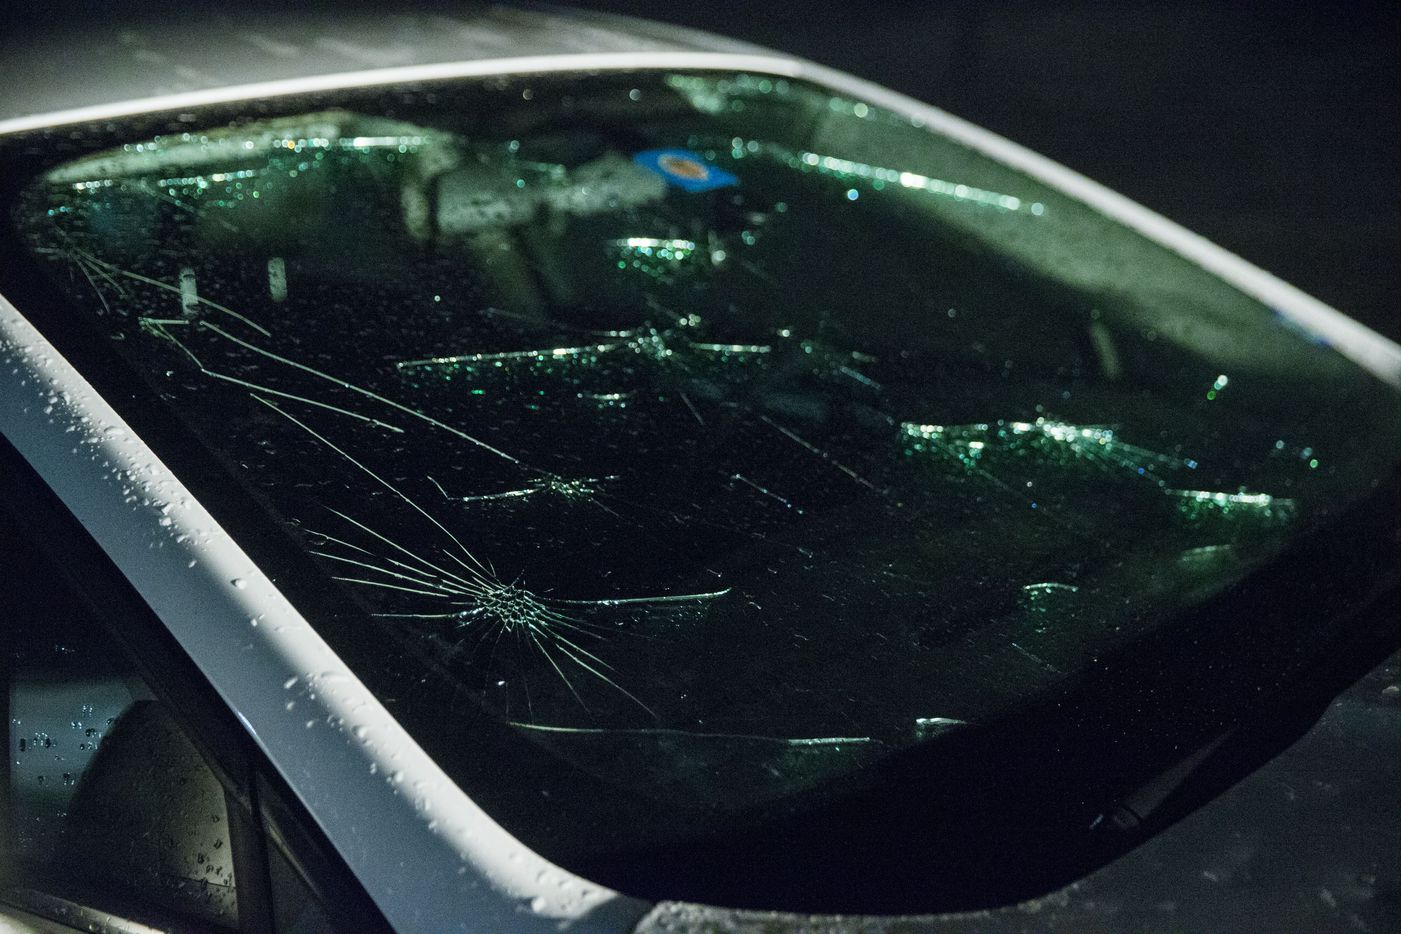 A hail damaged vehicle at The Villages at Willow Bay, near Eldorado and Independence parkways in Frisco, Texas on Sunday, March 24, 2019. A severe thunderstorm dropped massive amounts of hail as it swept through Collin County early Sunday evening, leaving the ground covered snow-white in some areas and many residents tending to damaged vehicles.